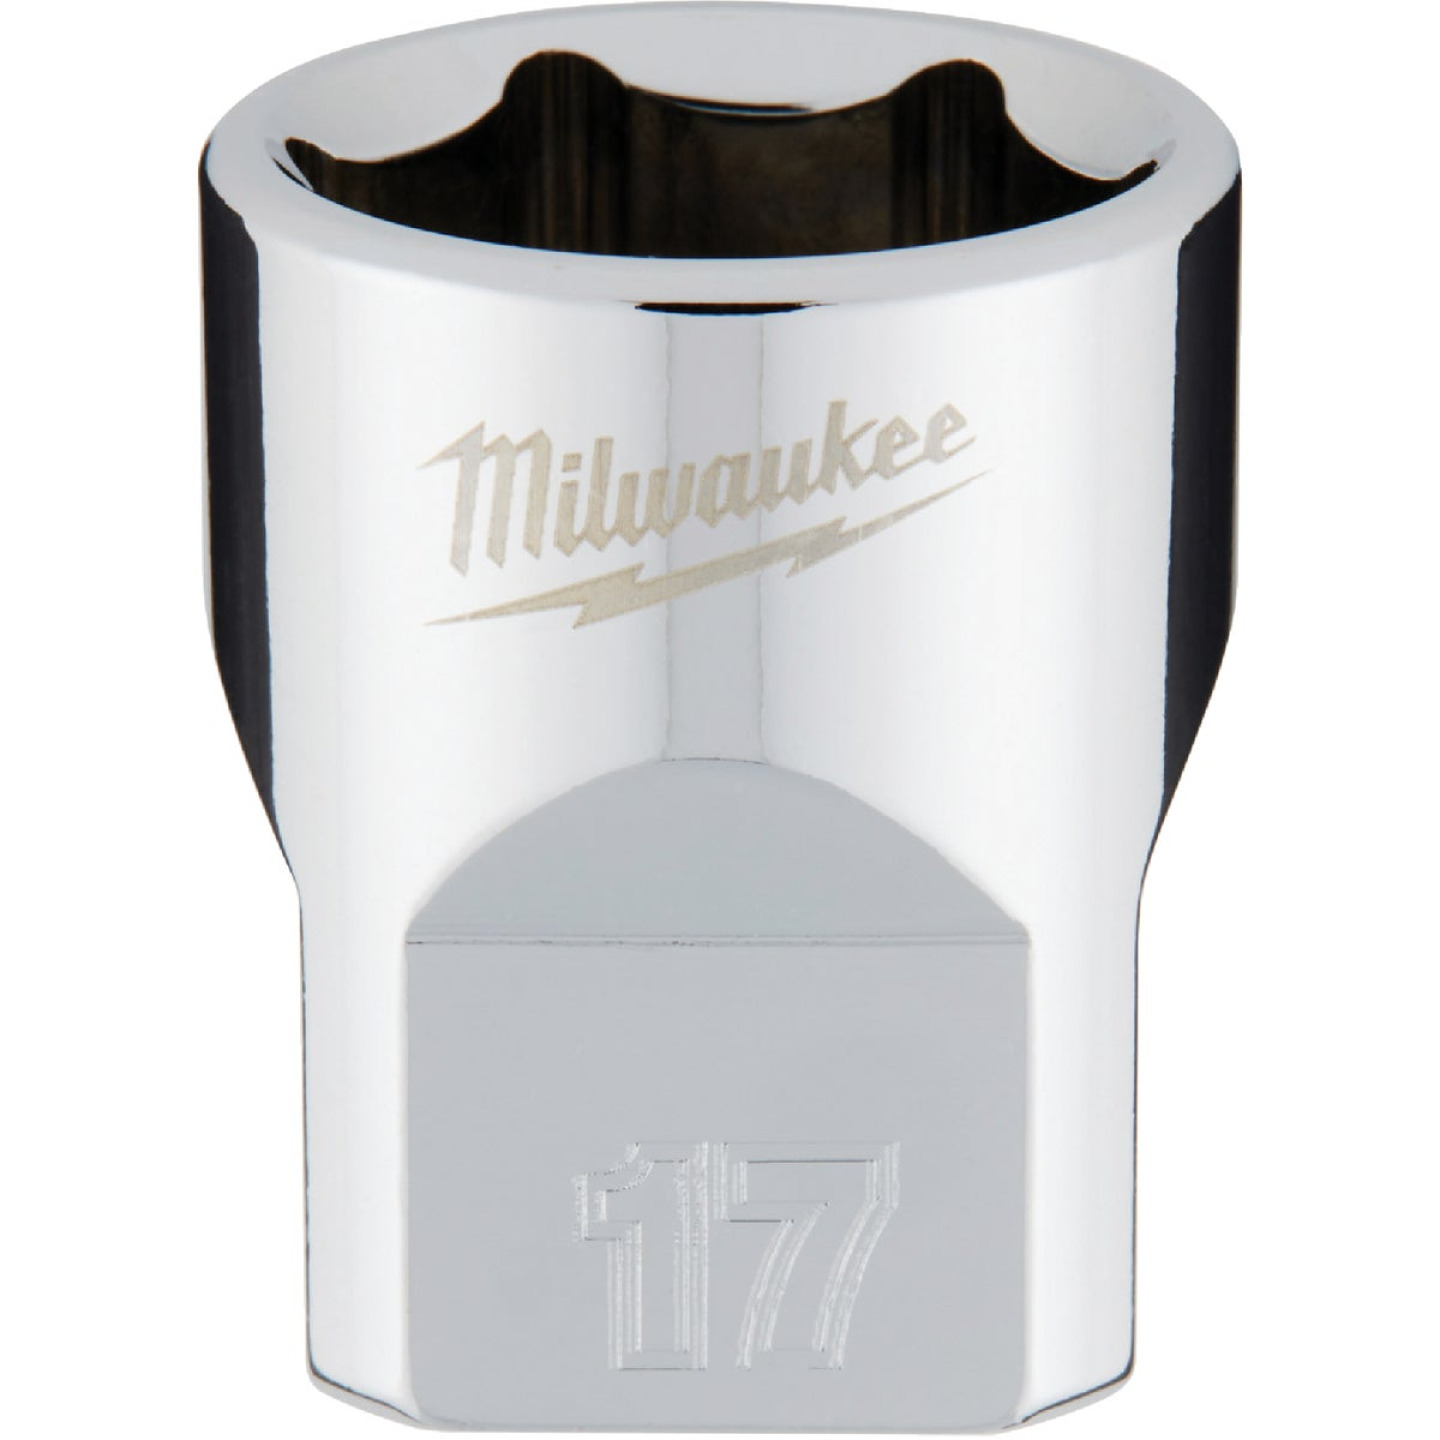 Milwaukee 3/8 In. Drive 17 mm 6-Point Shallow Metric Socket with FOUR FLAT Sides Image 1